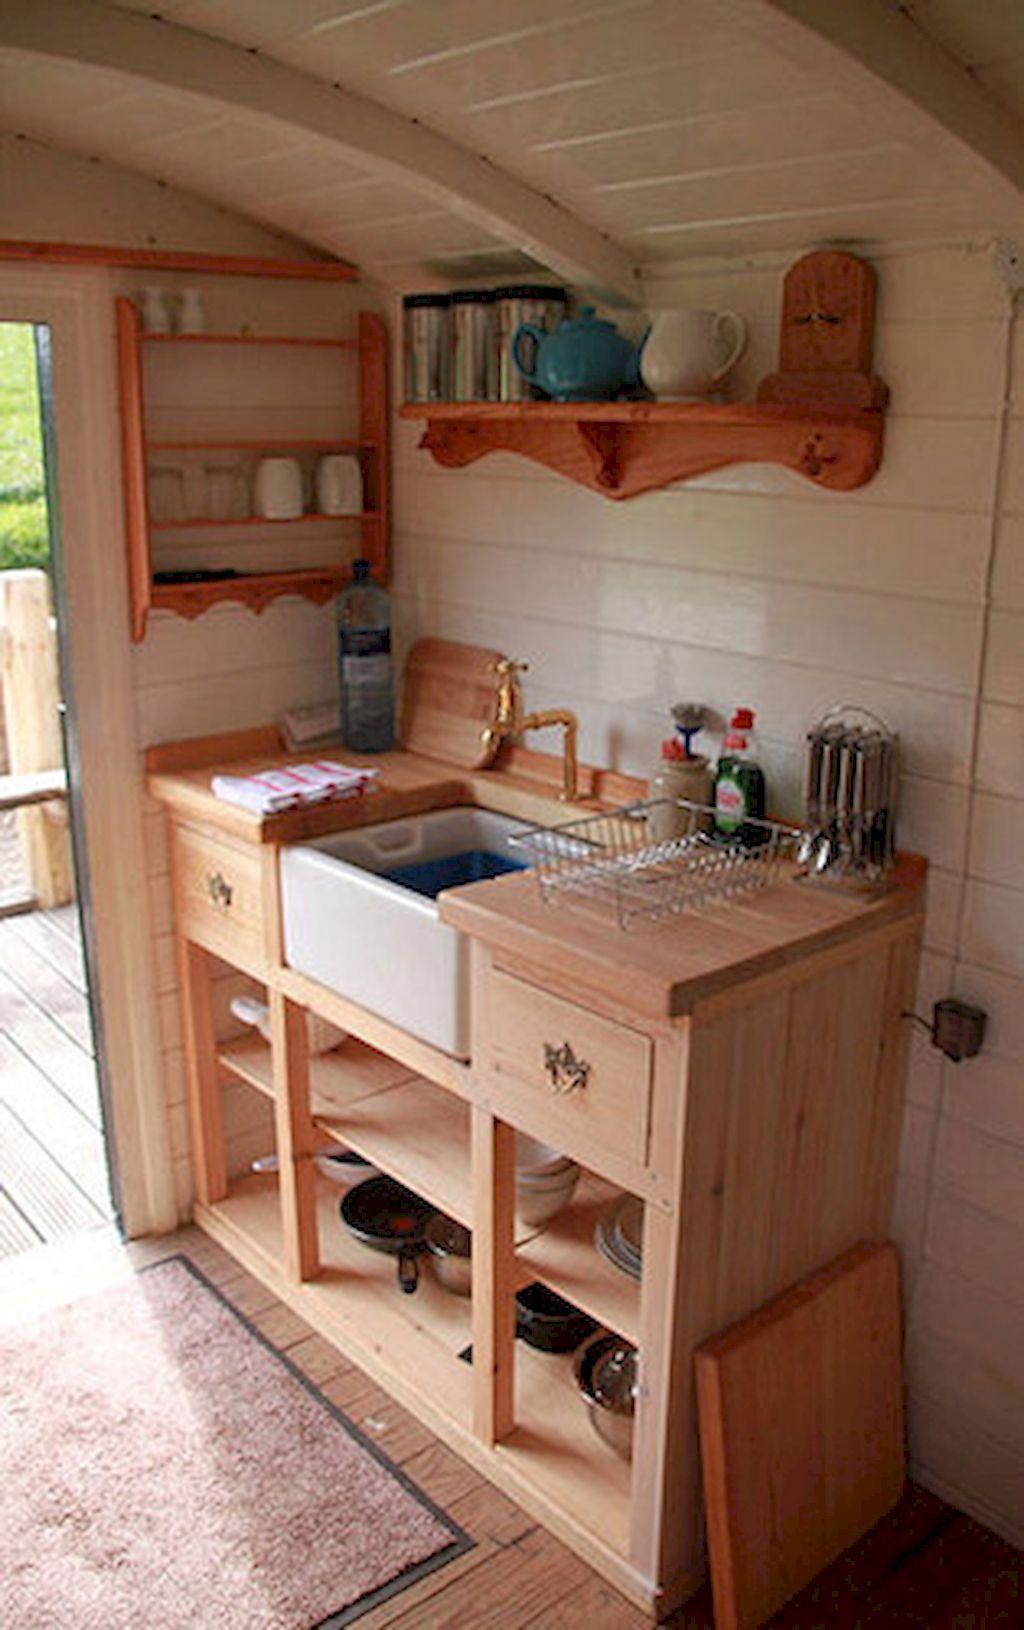 45 impressive tiny house kitchen maximize space ideas 5b56183987805 in 2020 tiny house living on small kaboodle kitchen ideas id=62736